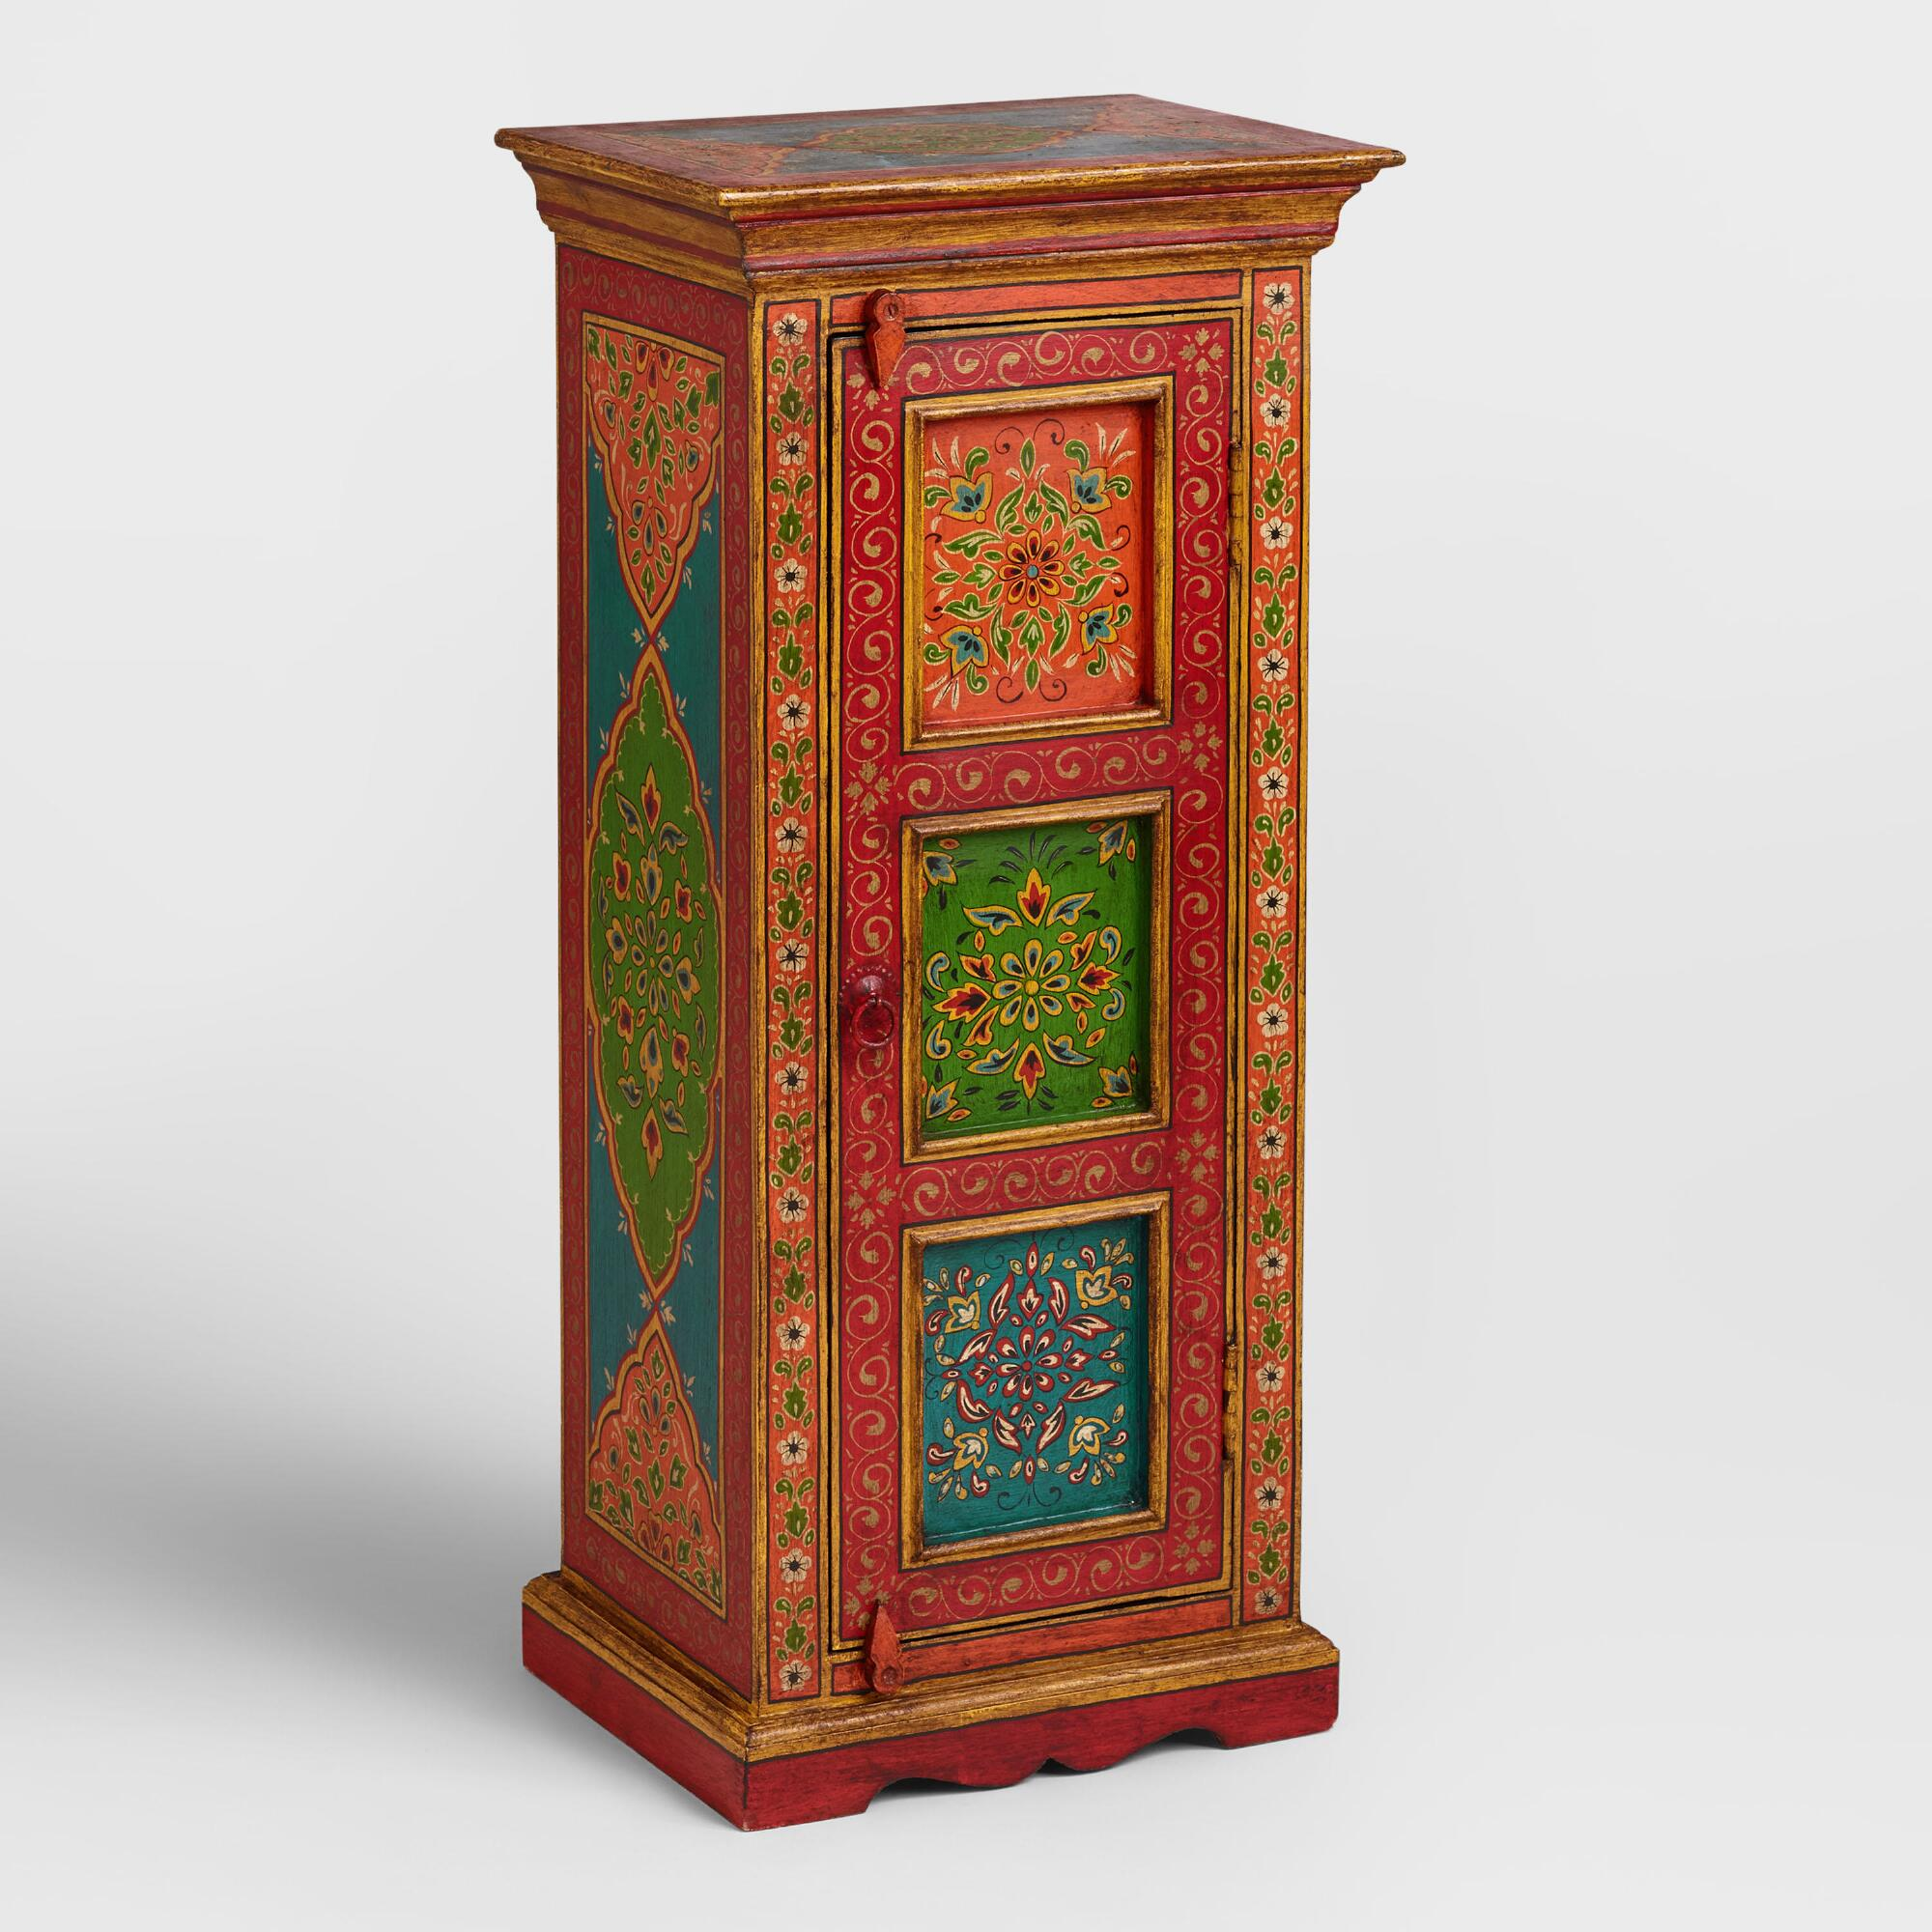 Superb img of Hand Painted Cabinet valentineblog.net with #A53A26 color and 2000x2000 pixels